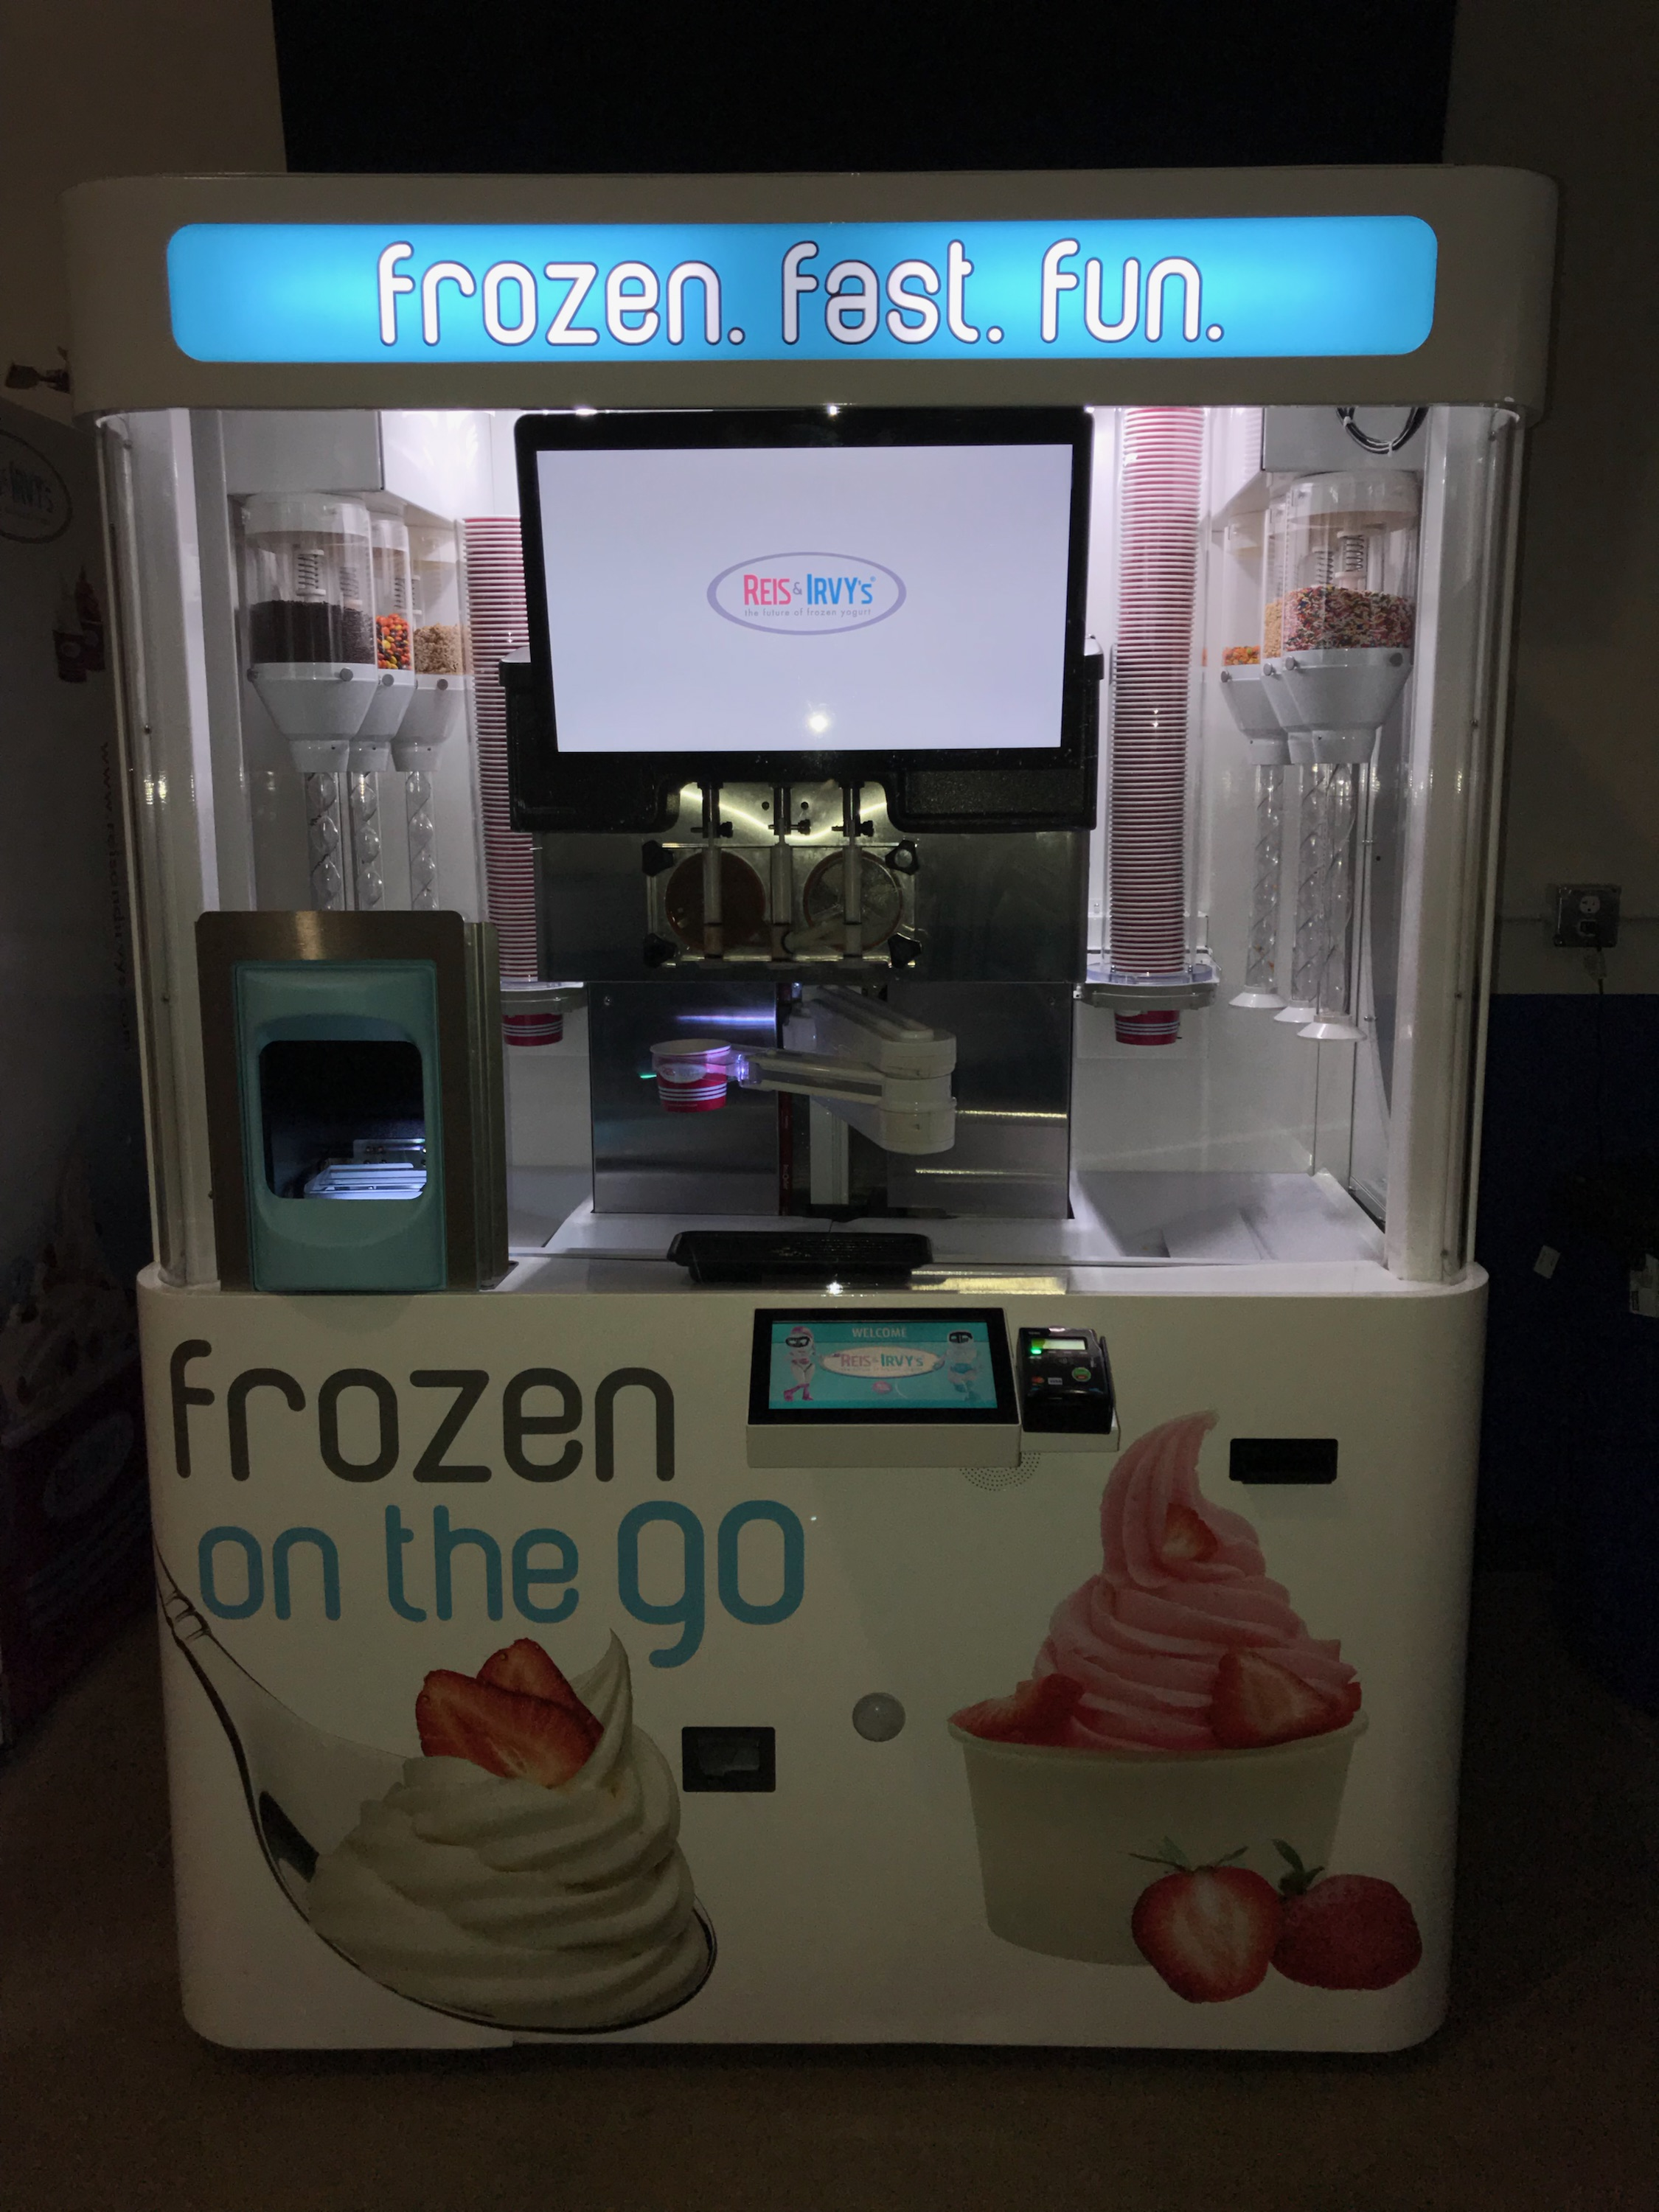 Robots Serving Frozen Yogurt Franchise - No Employees! High Margins! Hands Off!